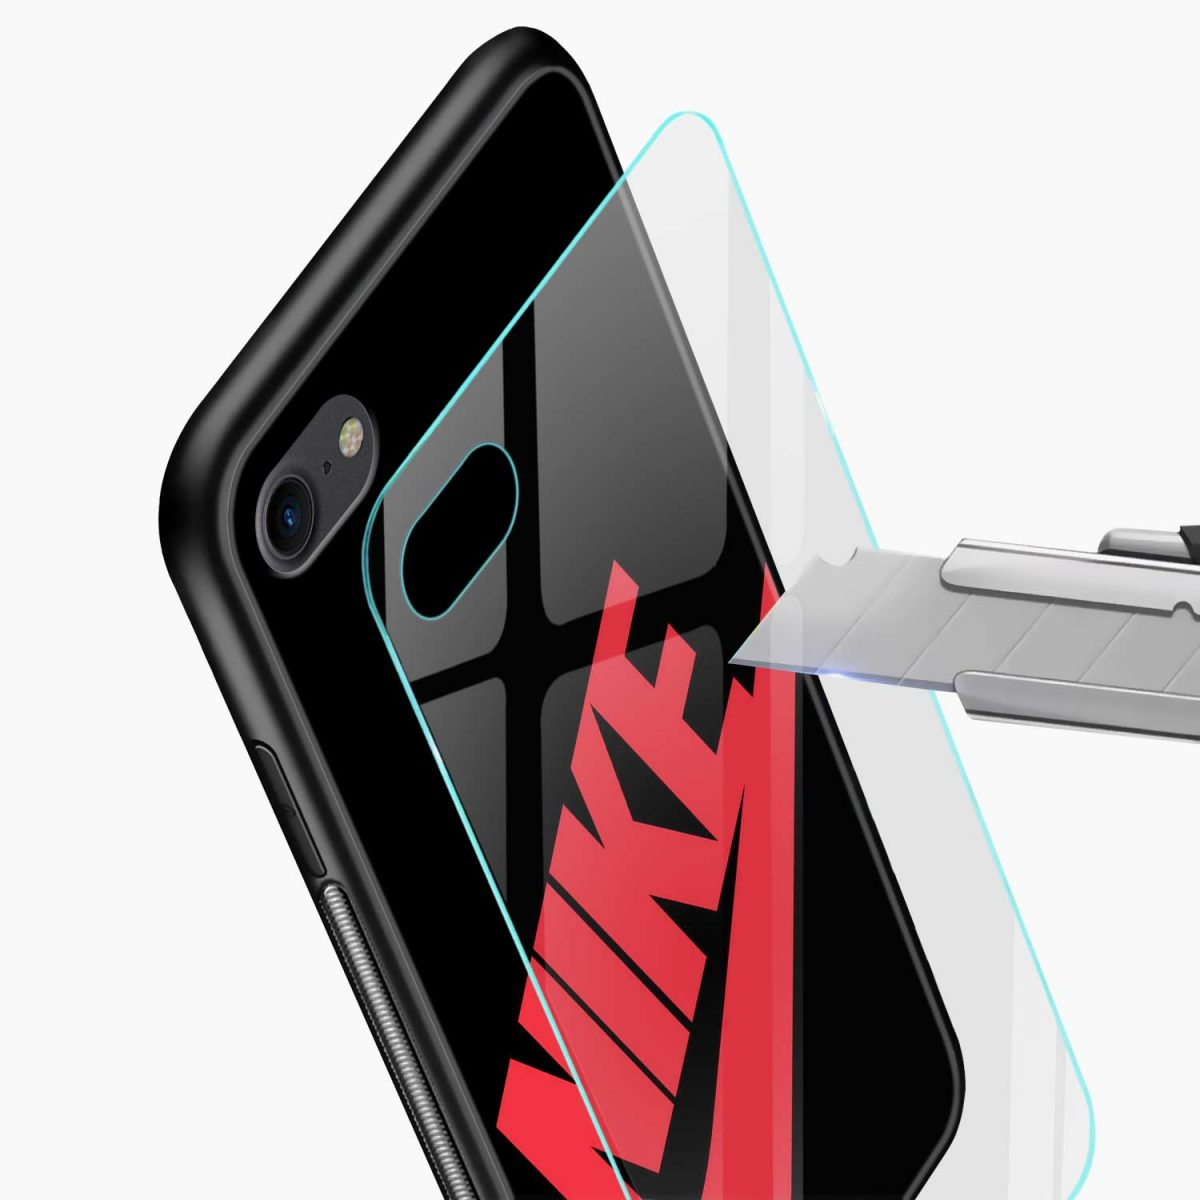 nike black red diagonal view apple iphone 6 7 8 se back cover 3